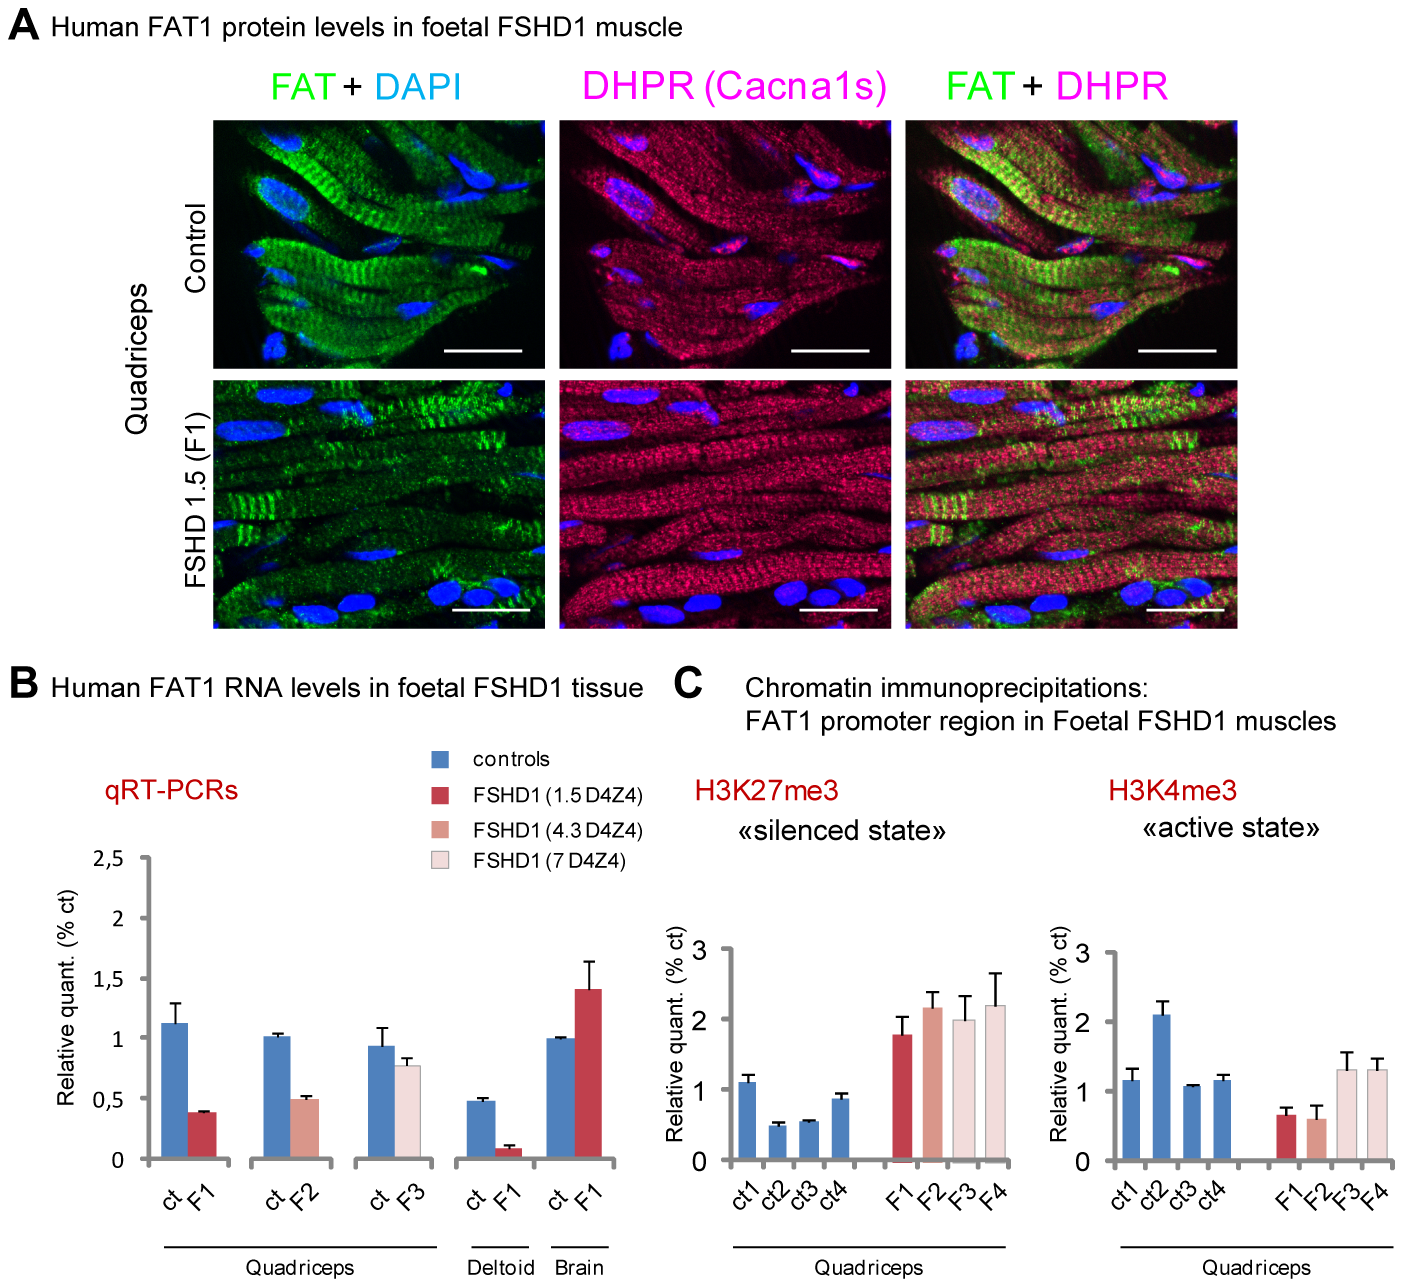 FAT1 protein and RNA levels are mis-regulated in human foetal FSHD tissues.